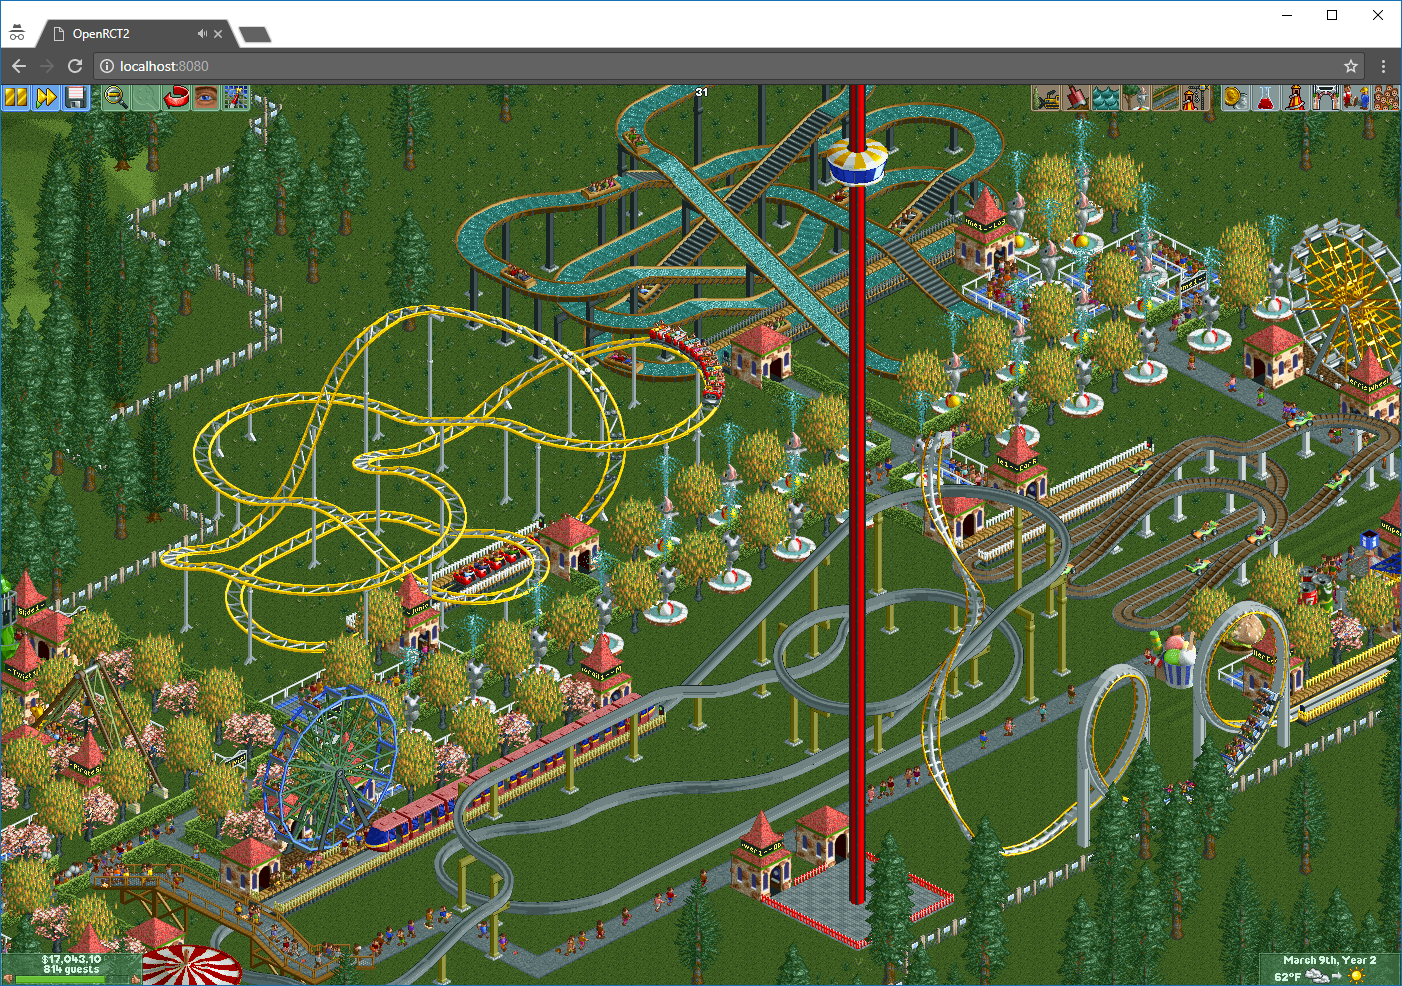 How to browserize RollerCoaster Tycoon? - Johannes Bader - Medium